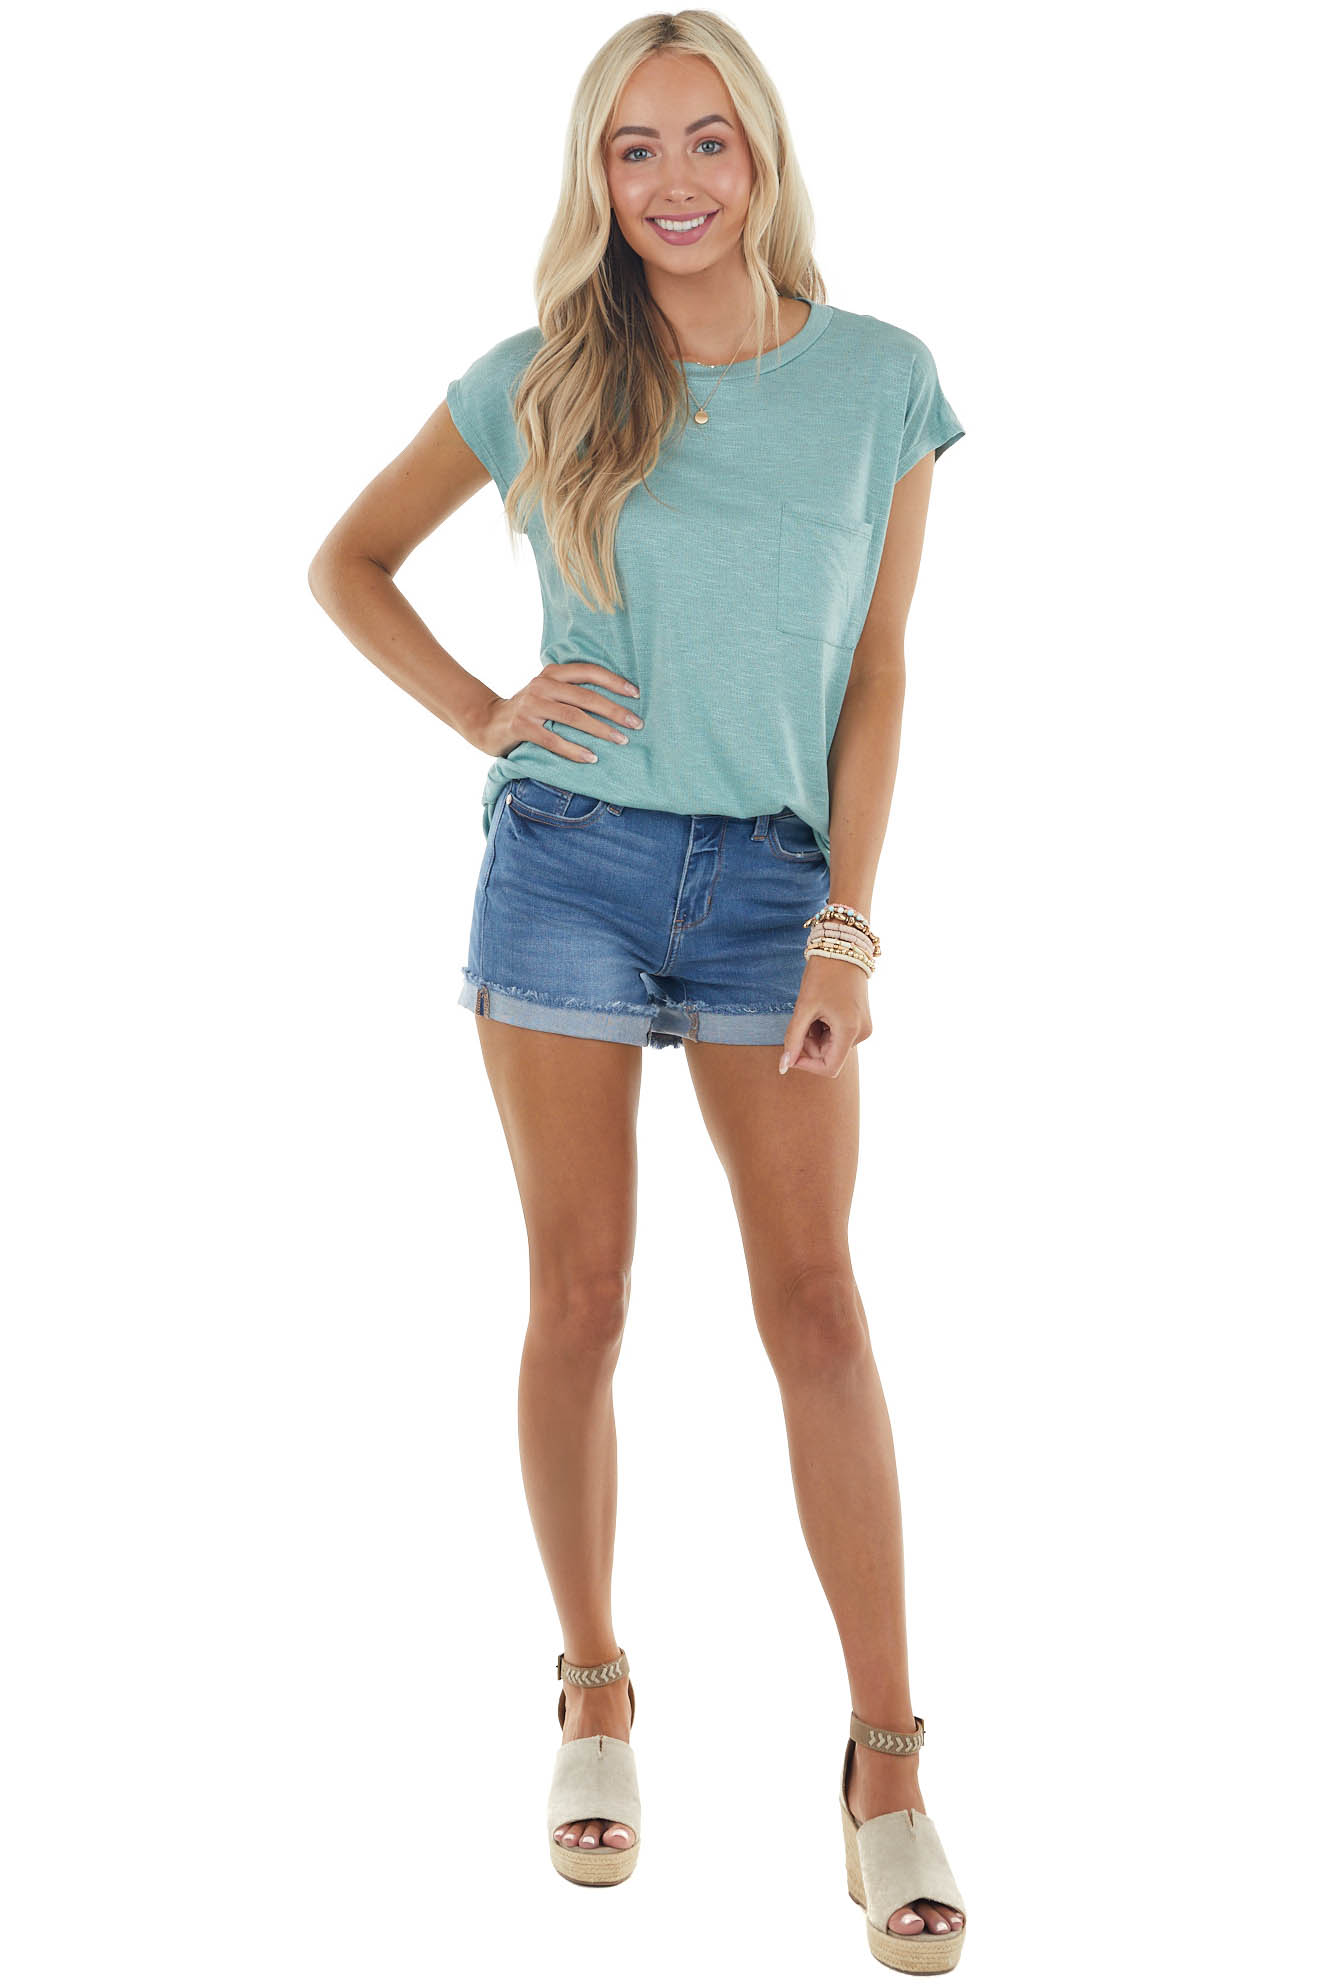 Juniper Short Sleeve Textured Knit Top with Front Pocket